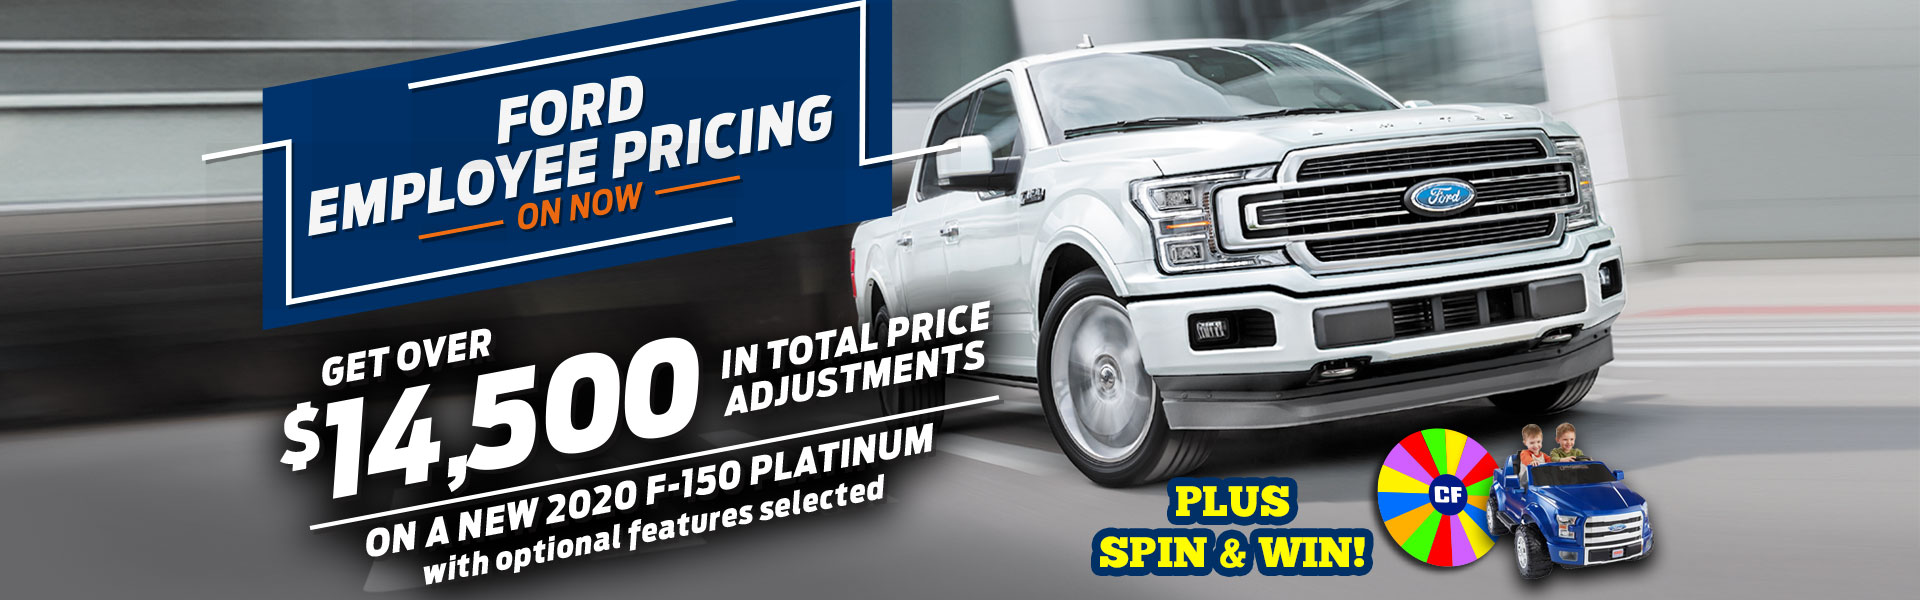 Ford Employee Pricing F-150 Sale